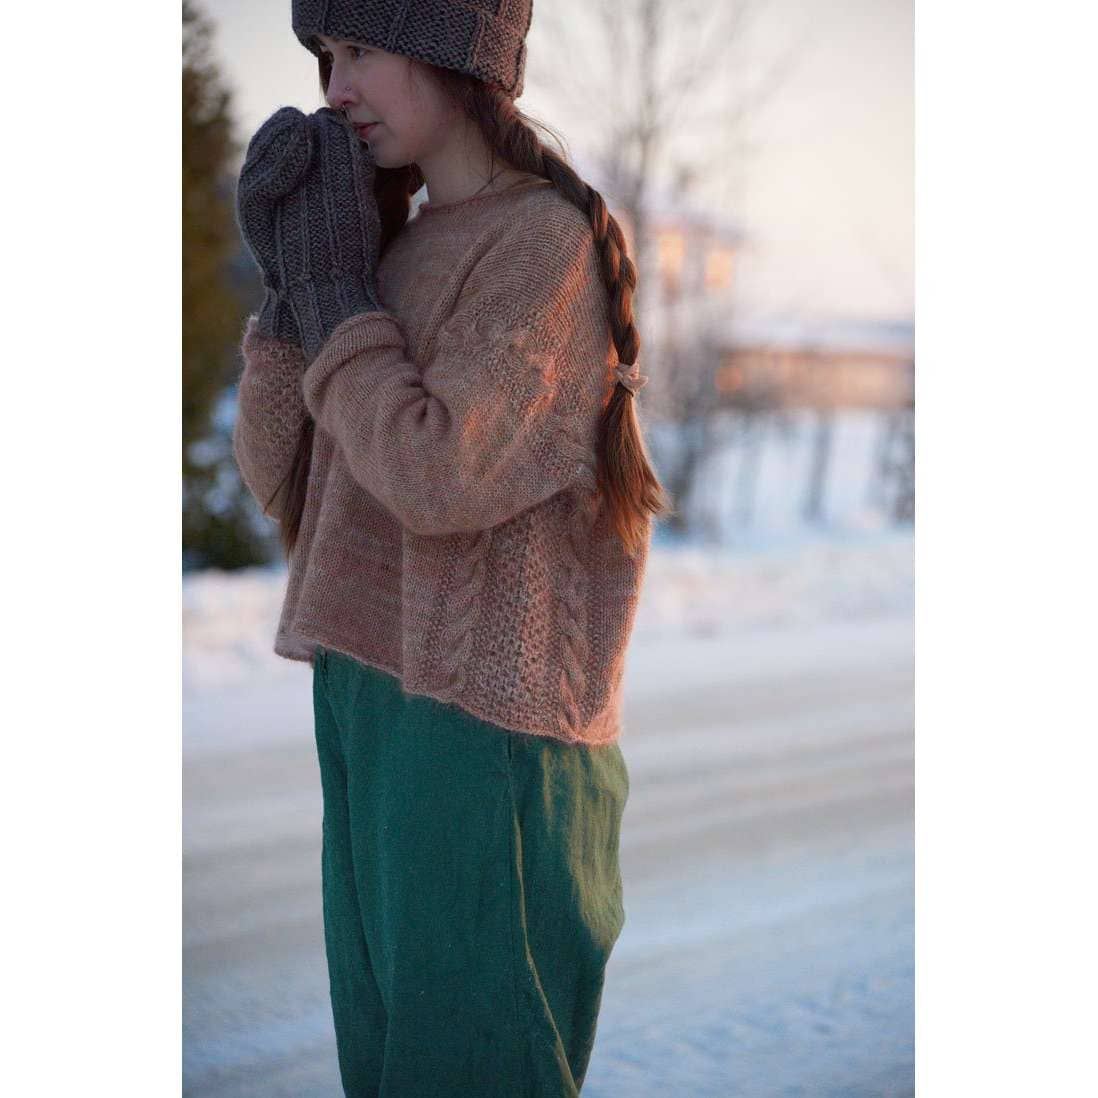 Knits About Winter - Emily Foden | Yarn Worx